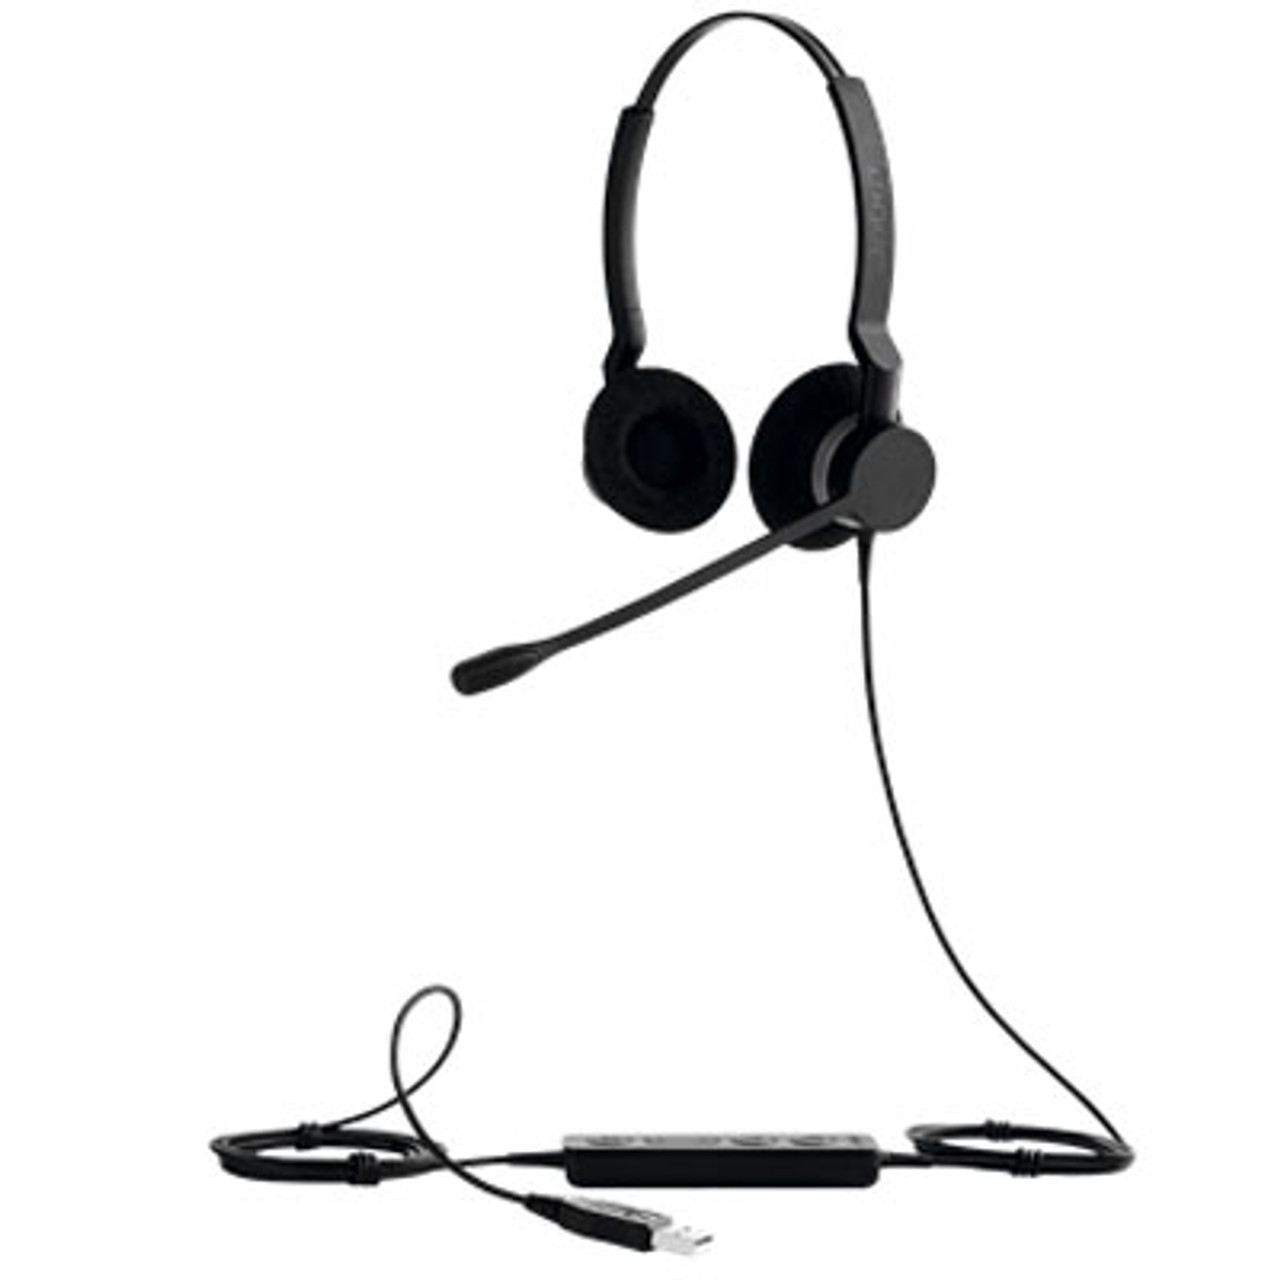 Image for Jabra BIZ 2300 Duo UC USB-A headset CX Computer Superstore